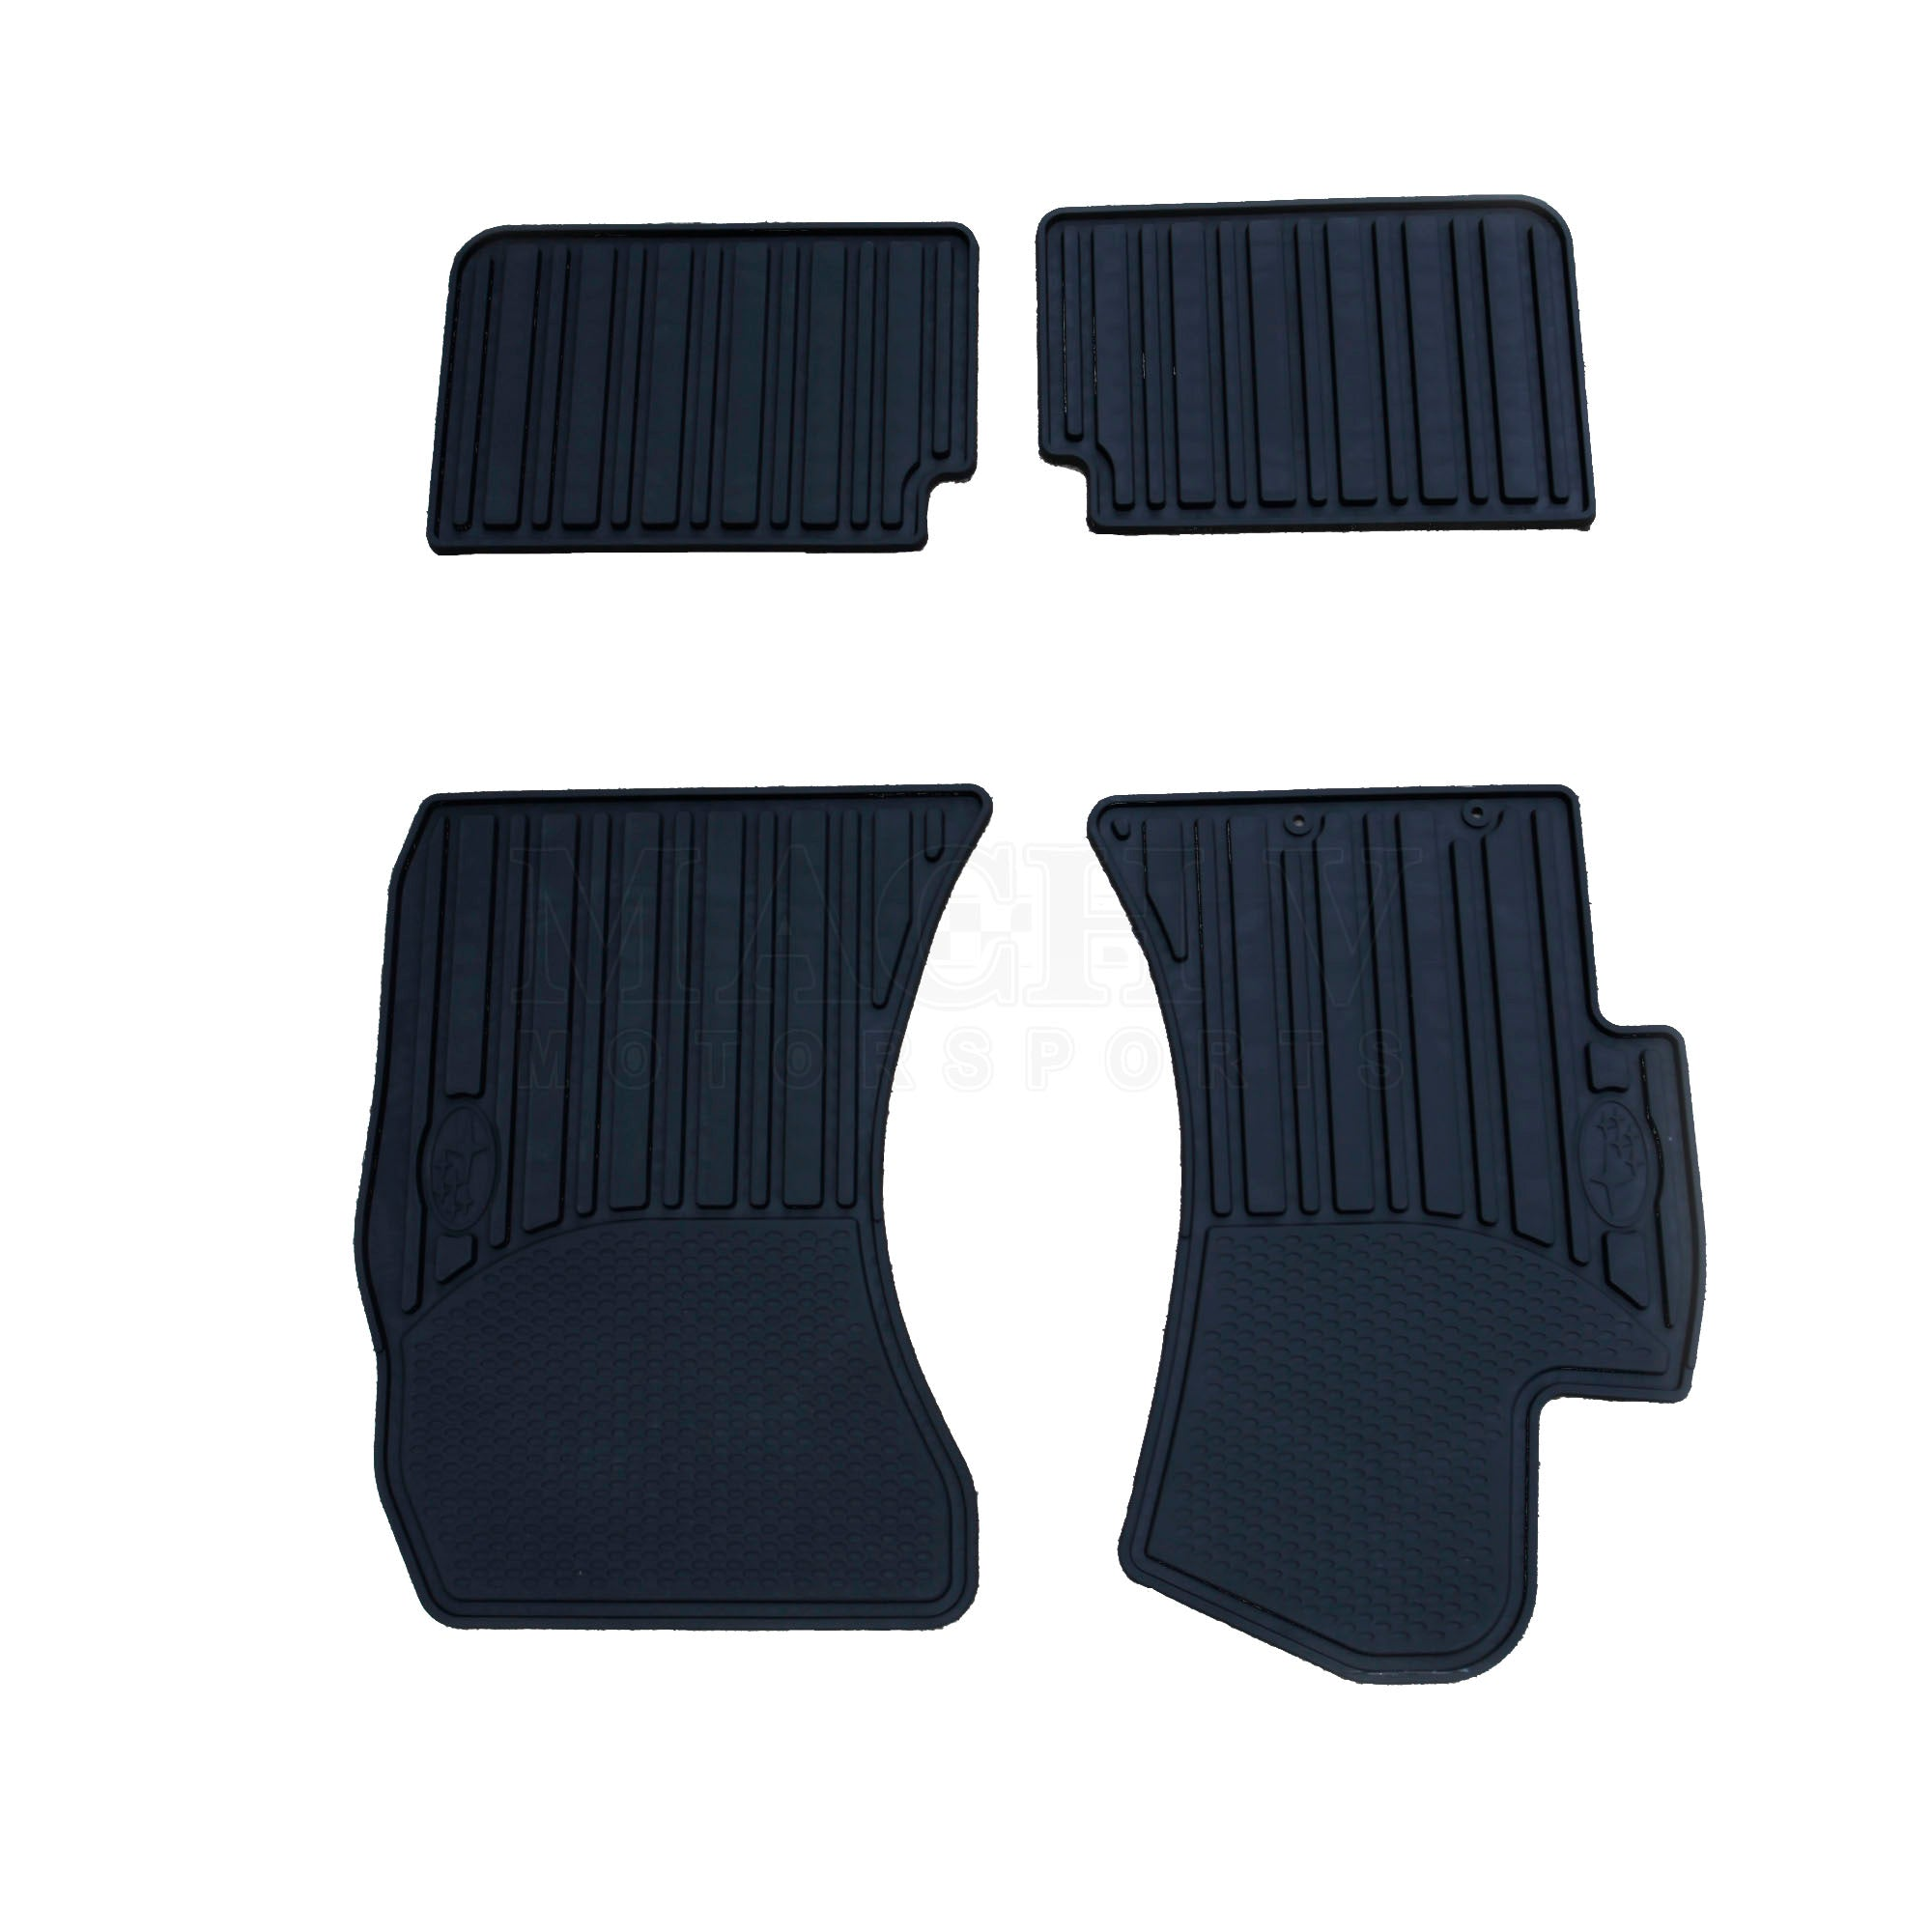 Custom Car Floor Mats for Subaru WRX 2007-2014 All Weather Waterproof Non-Slip Full Covered Protection Advanced Performance Liners Car Liner Black